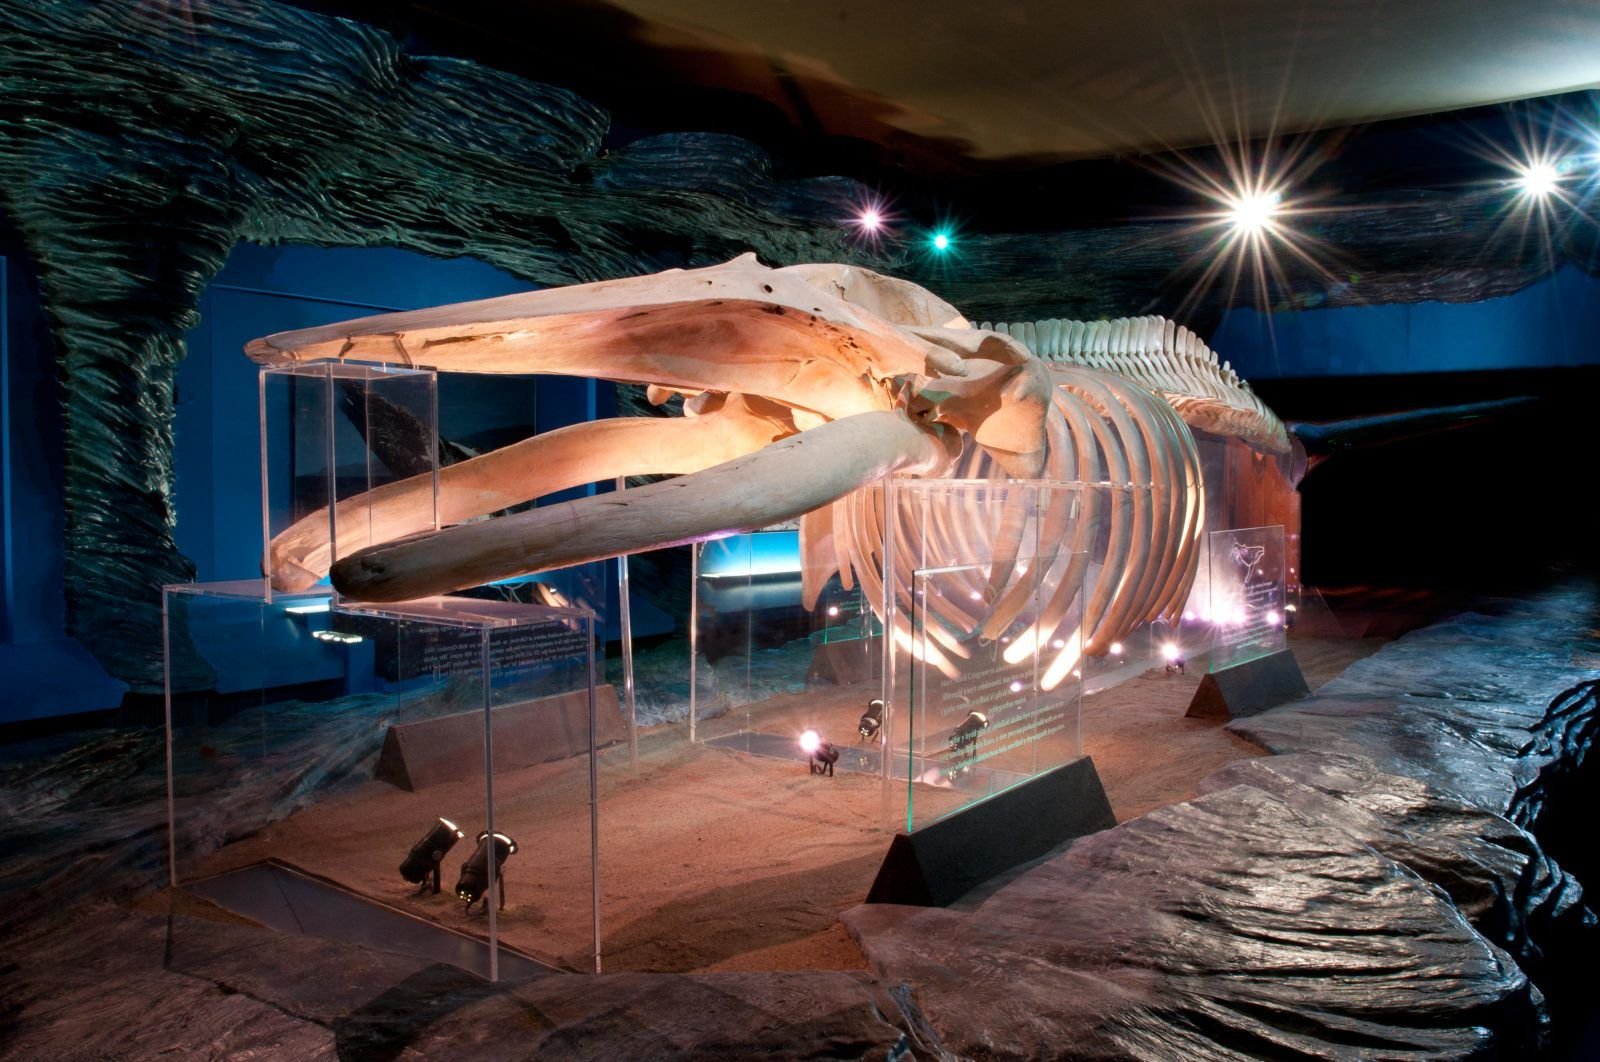 Humpback Whale at National Museum Cardiff